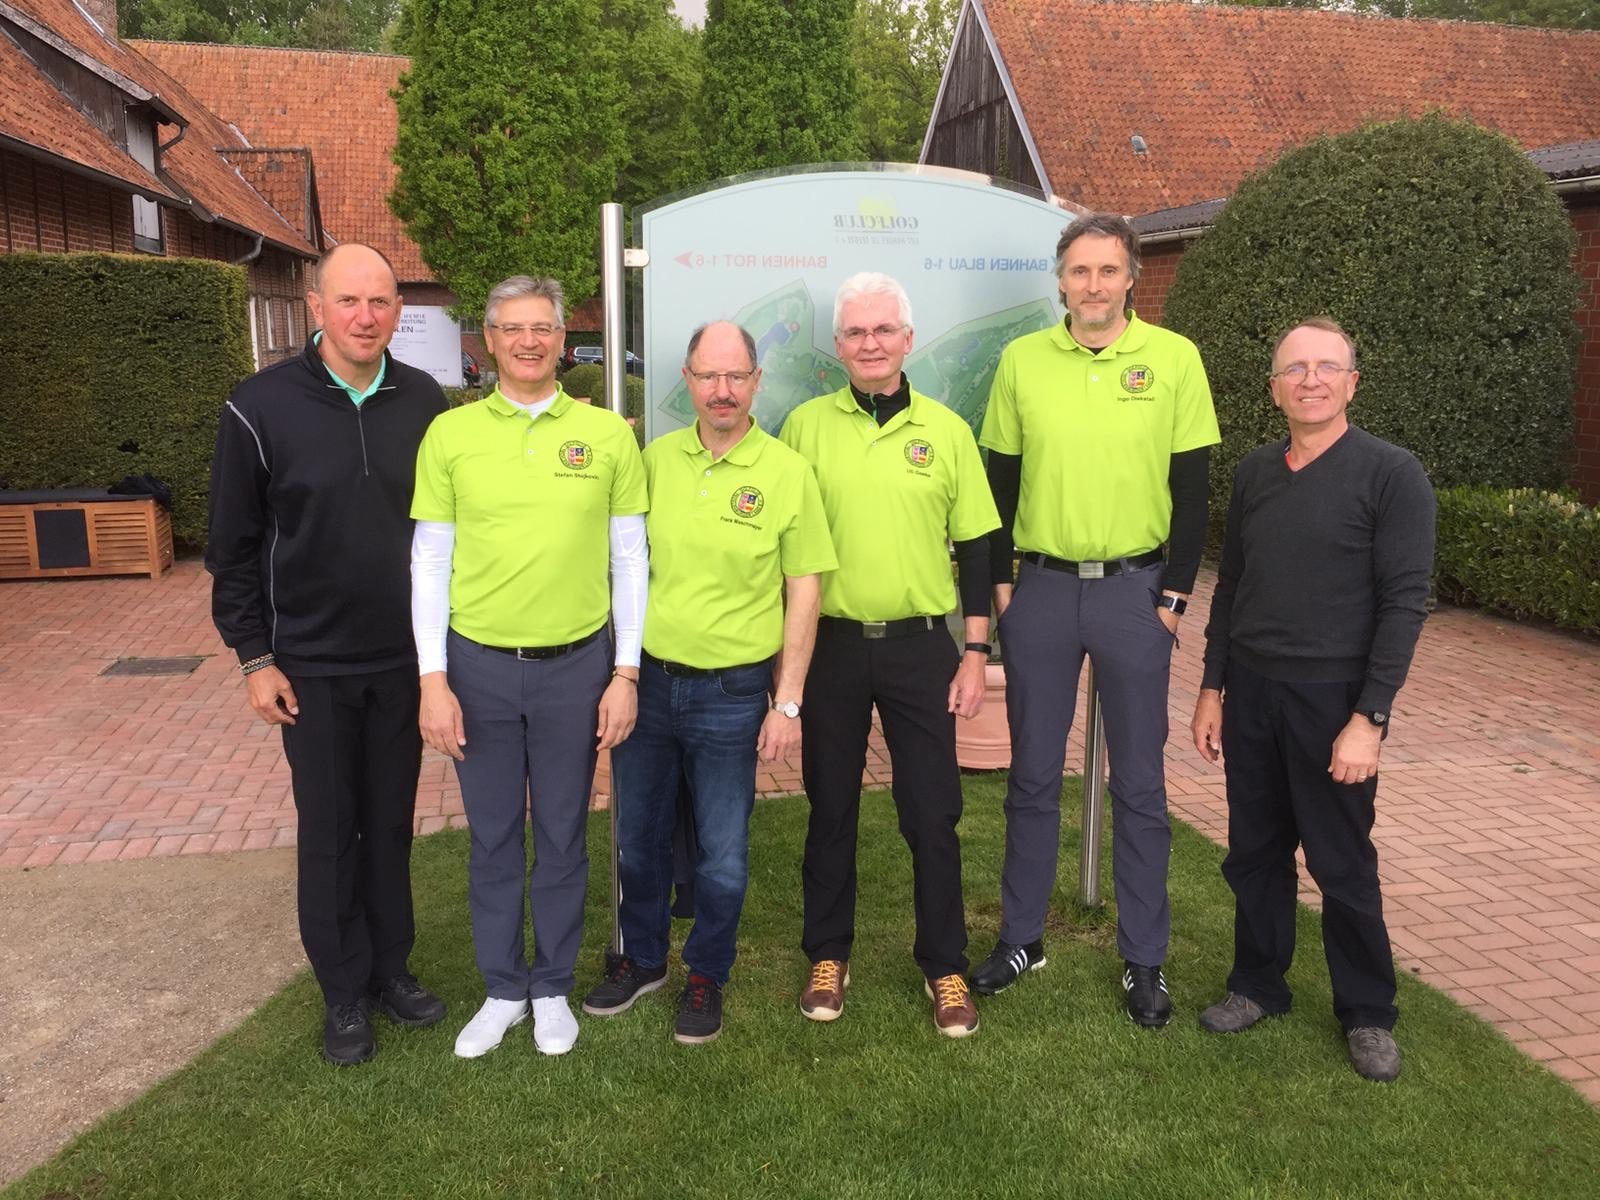 Superstart der Golf-Herren in die Ligaspiele 2019!